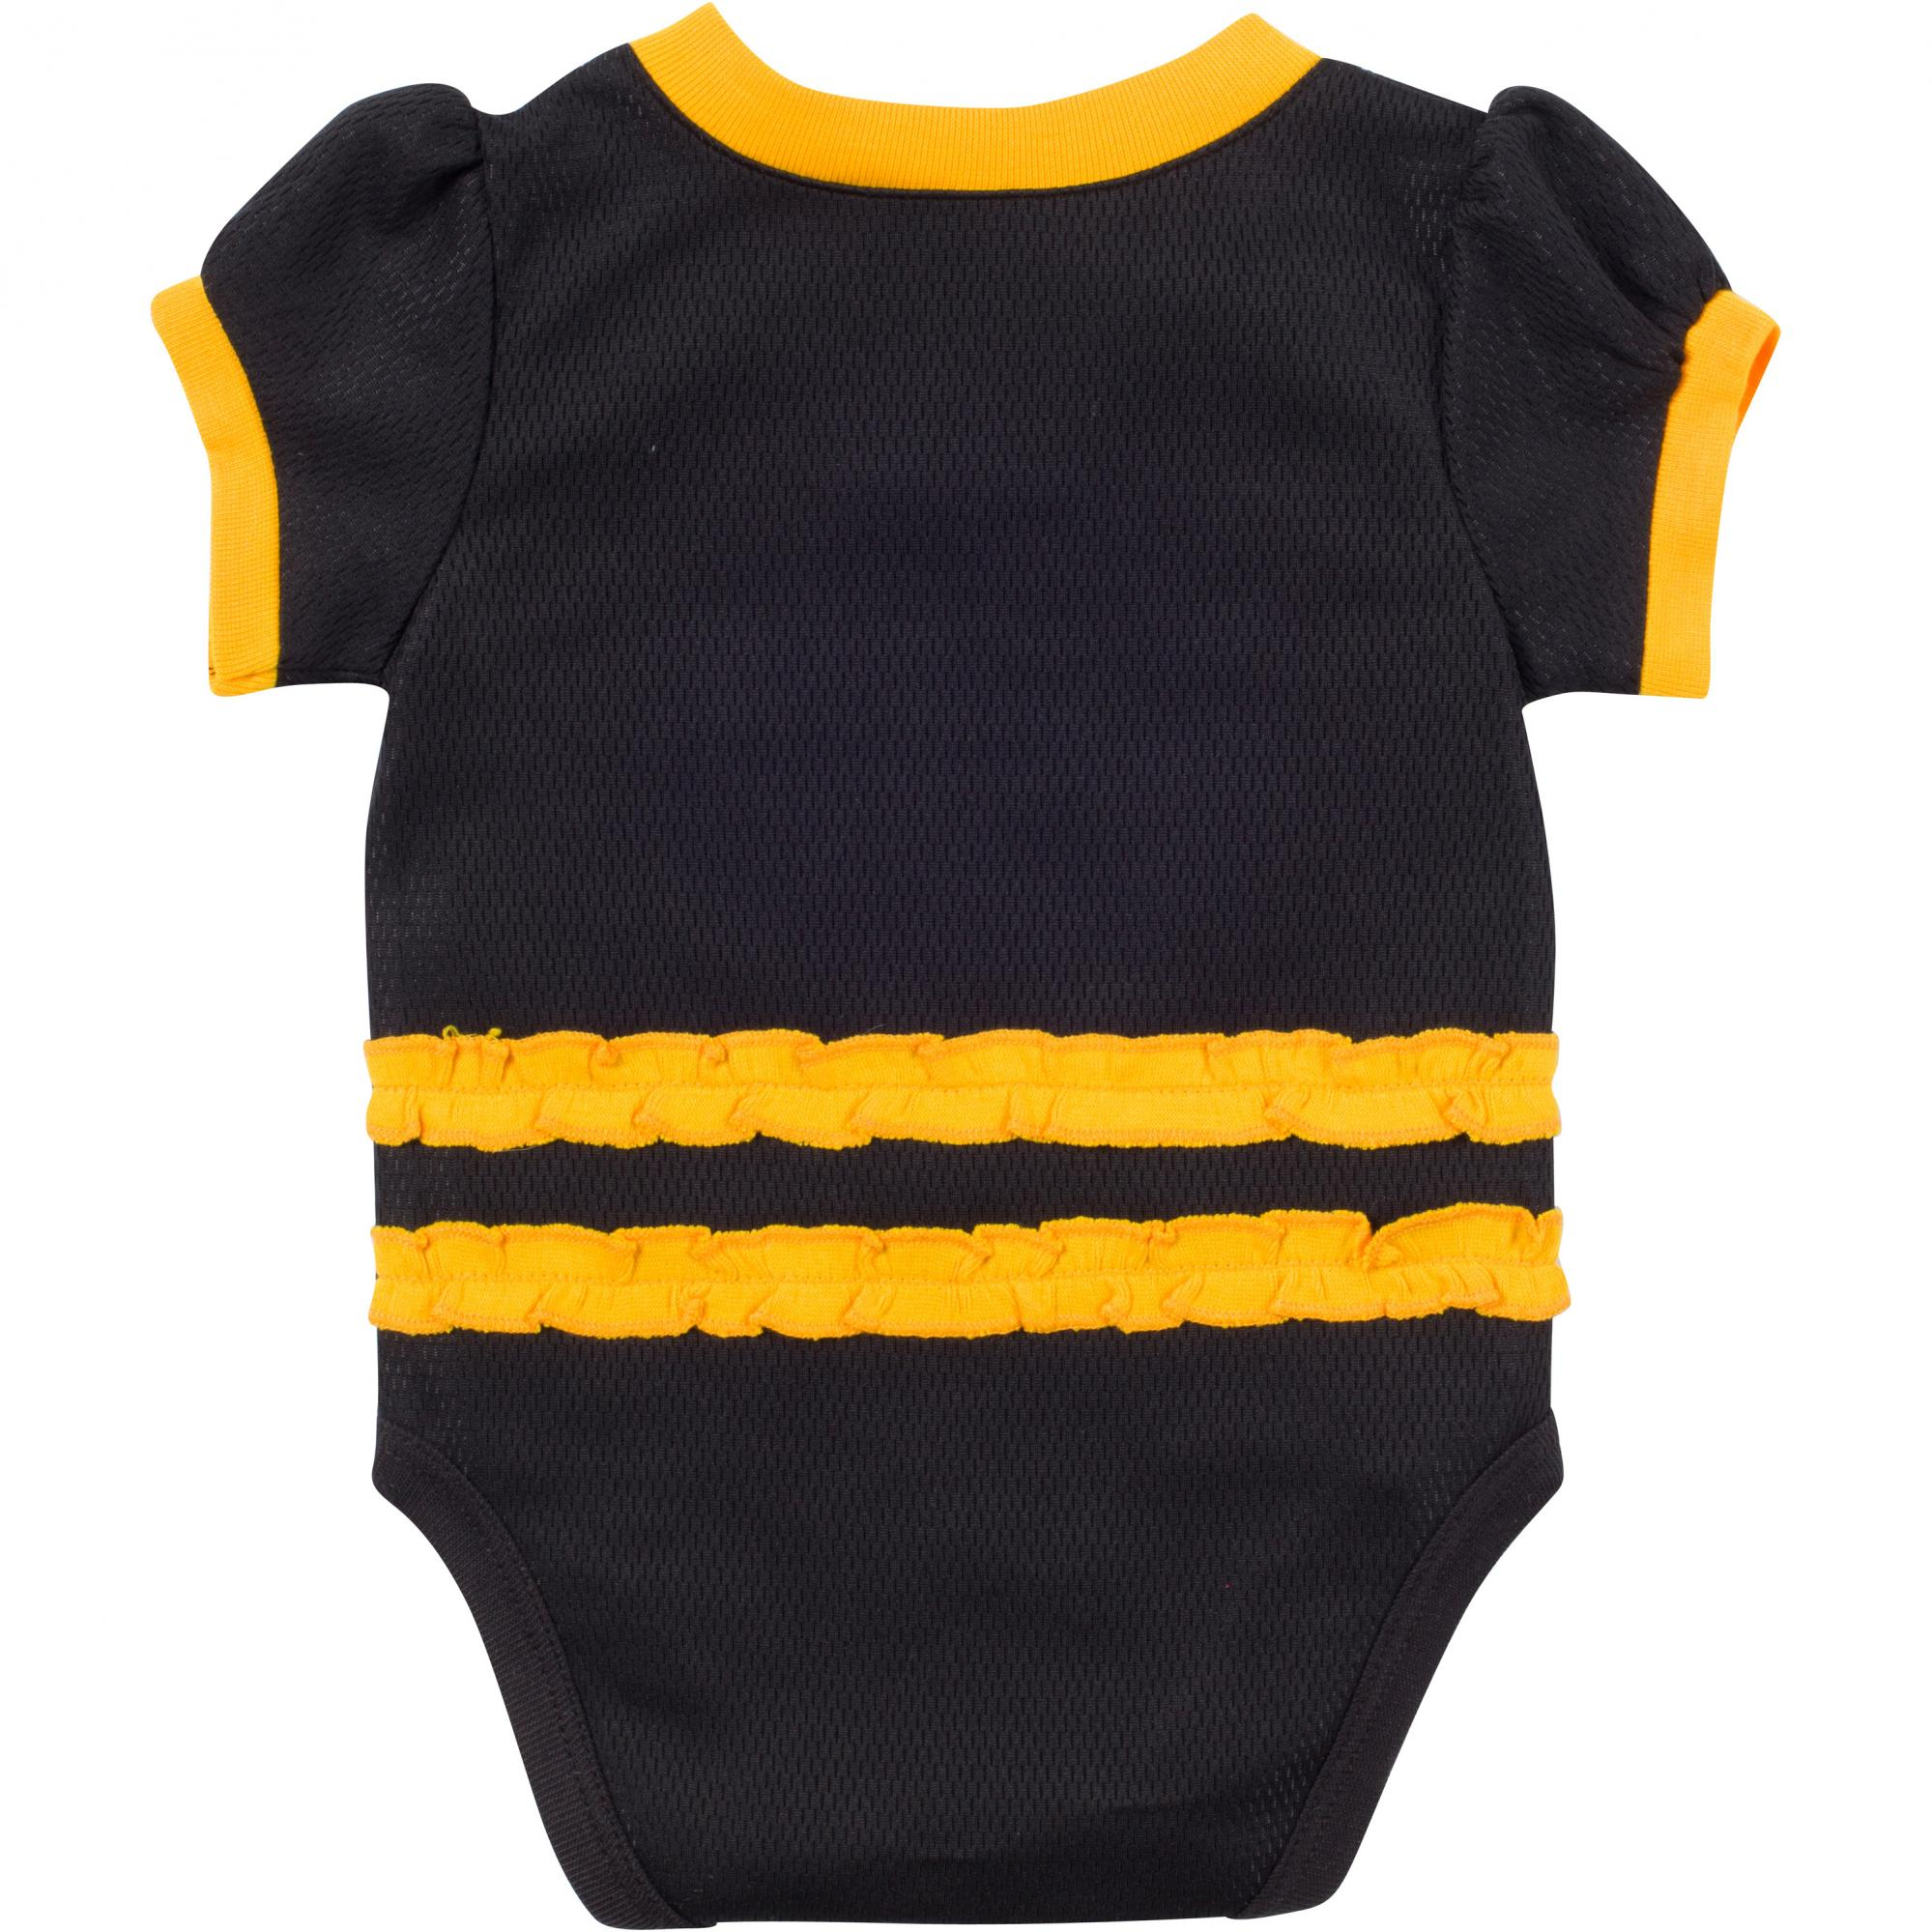 steelers-baby-rufflebutt-player-jersey-bodysuit-1680-back.jpg